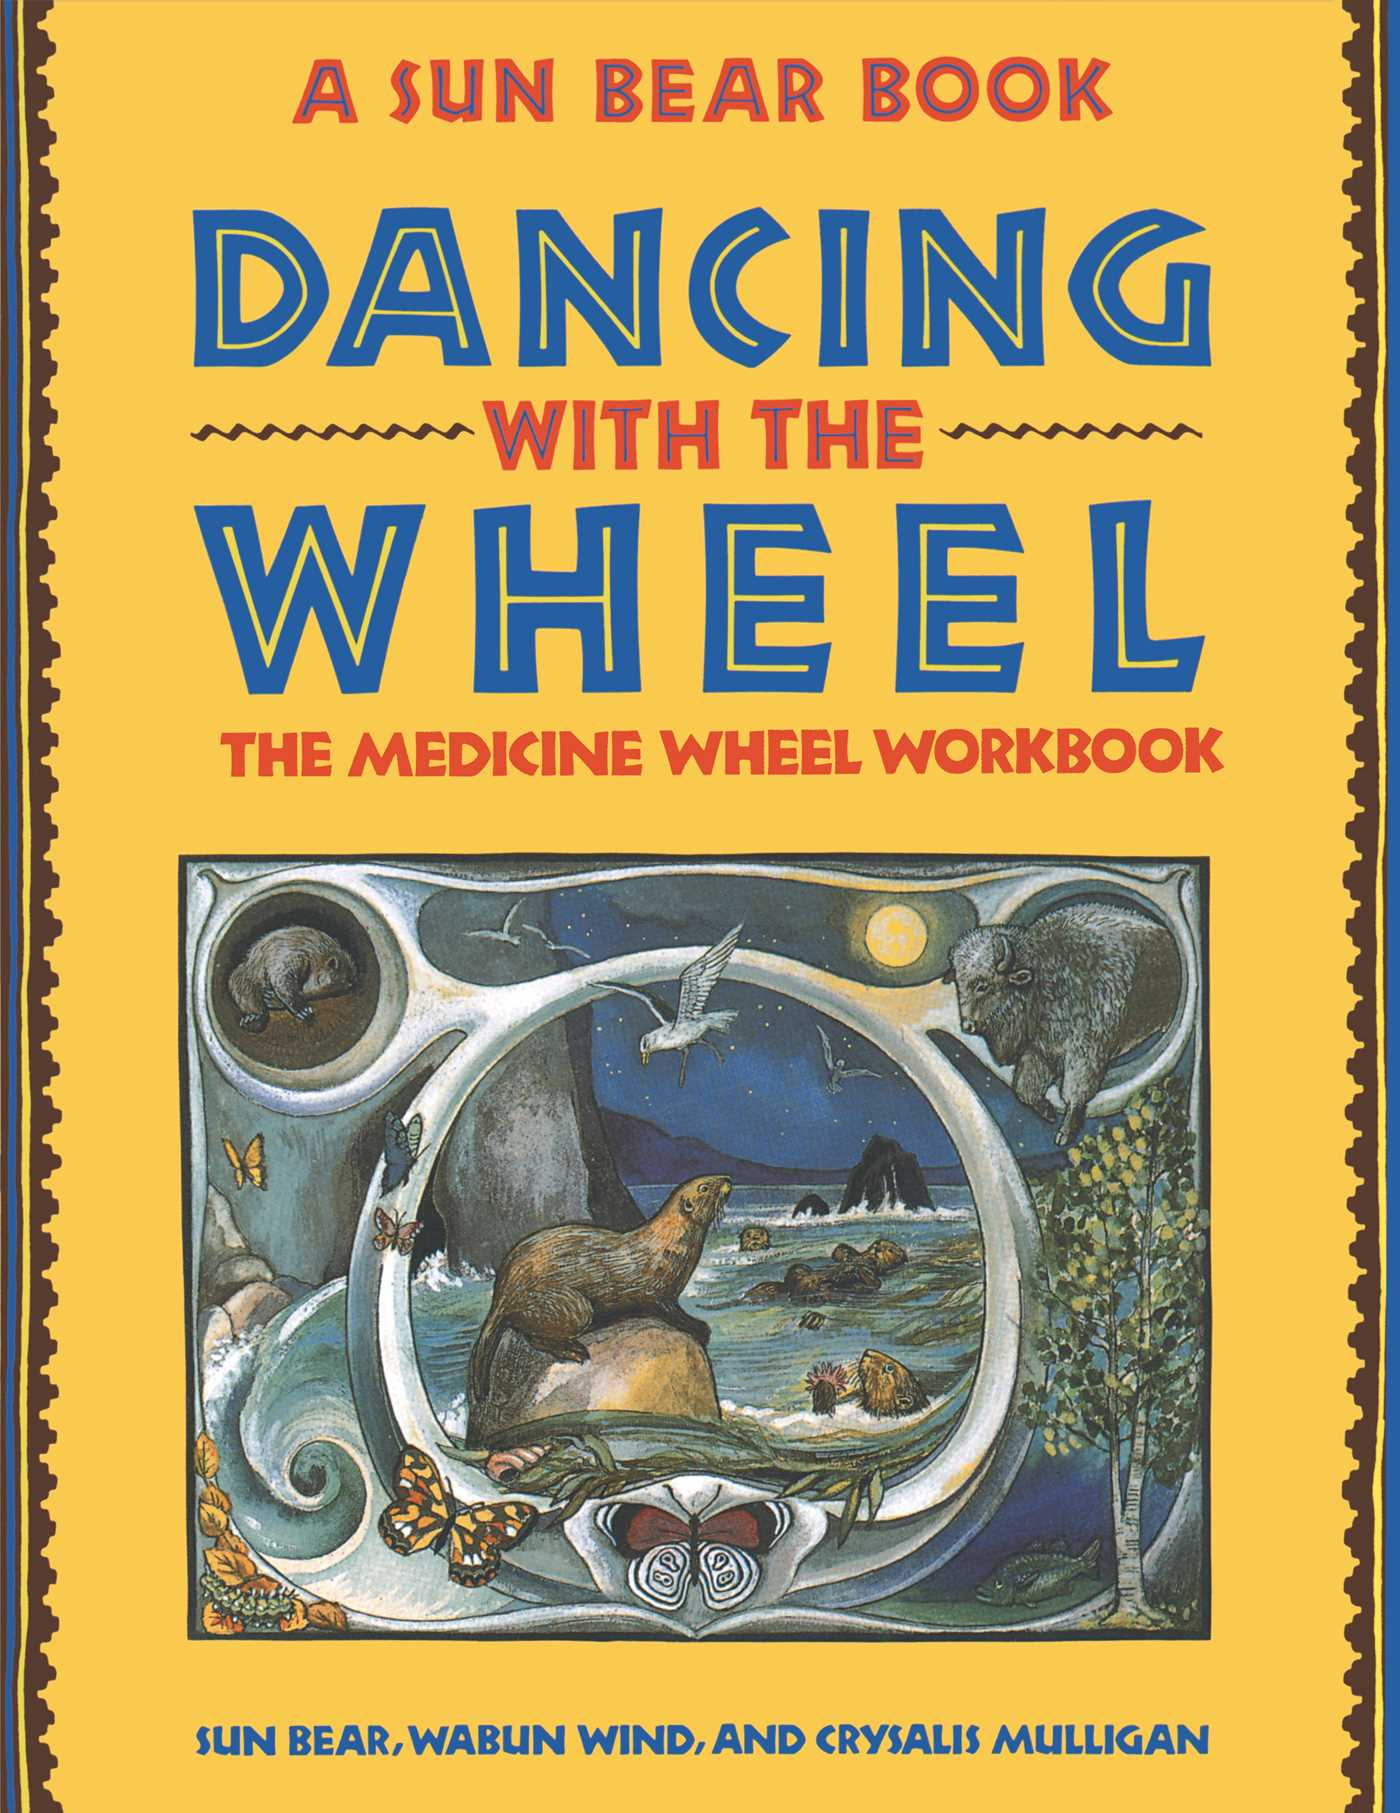 Dancing-with-the-wheel-9780671767327_hr